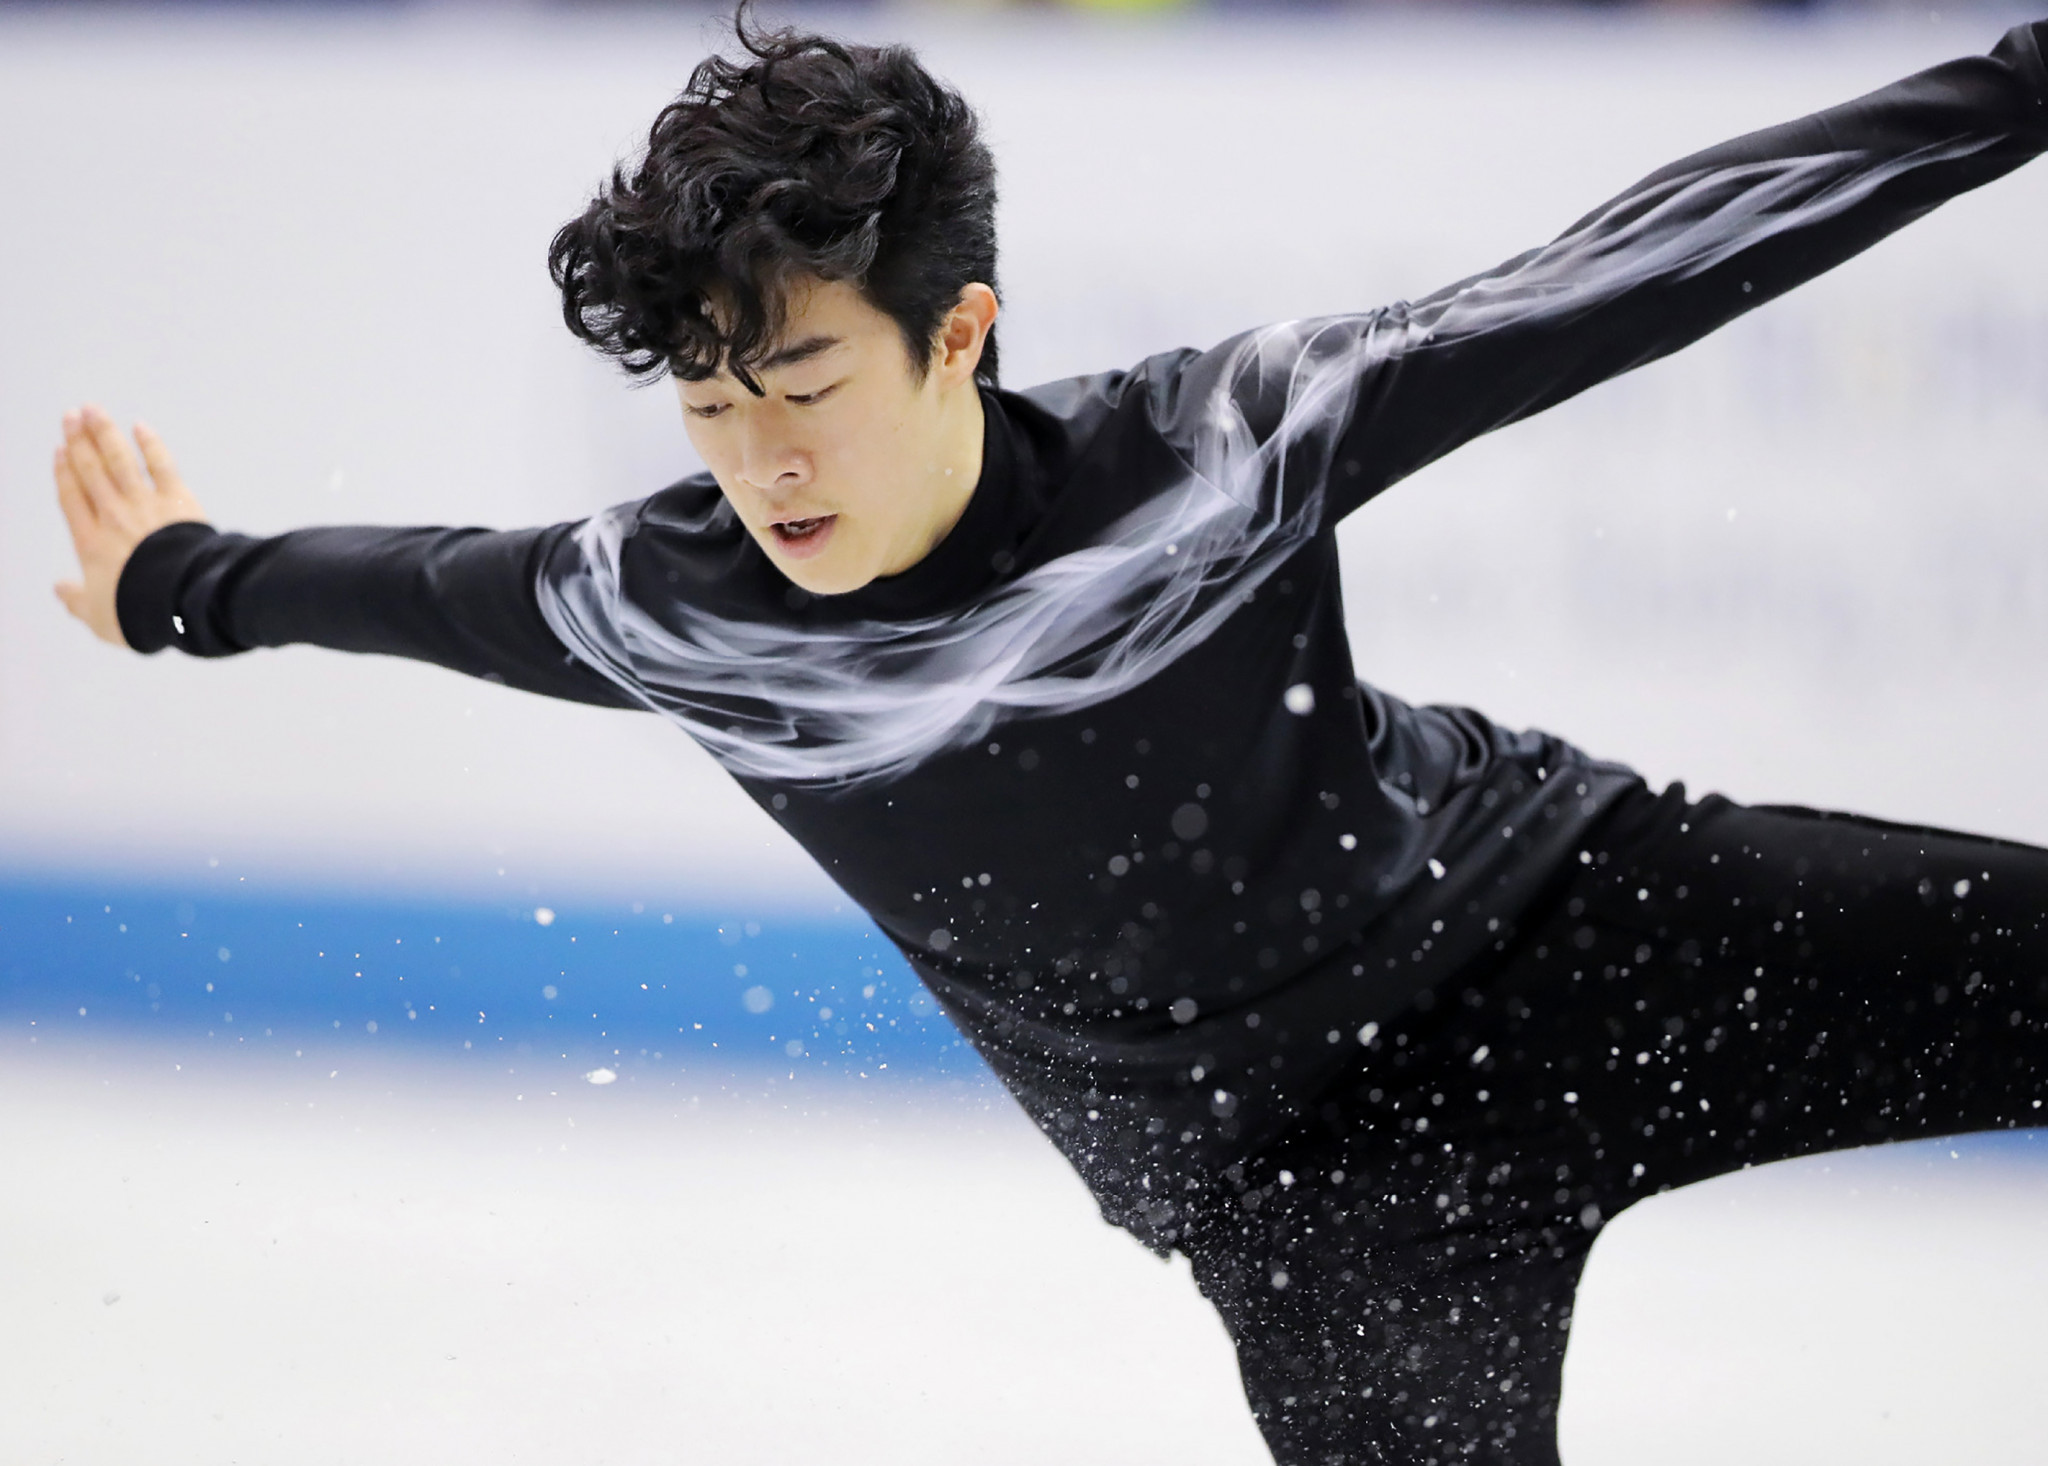 Nathan Chen of the United States leads the men's event at Skate America ©Getty Images